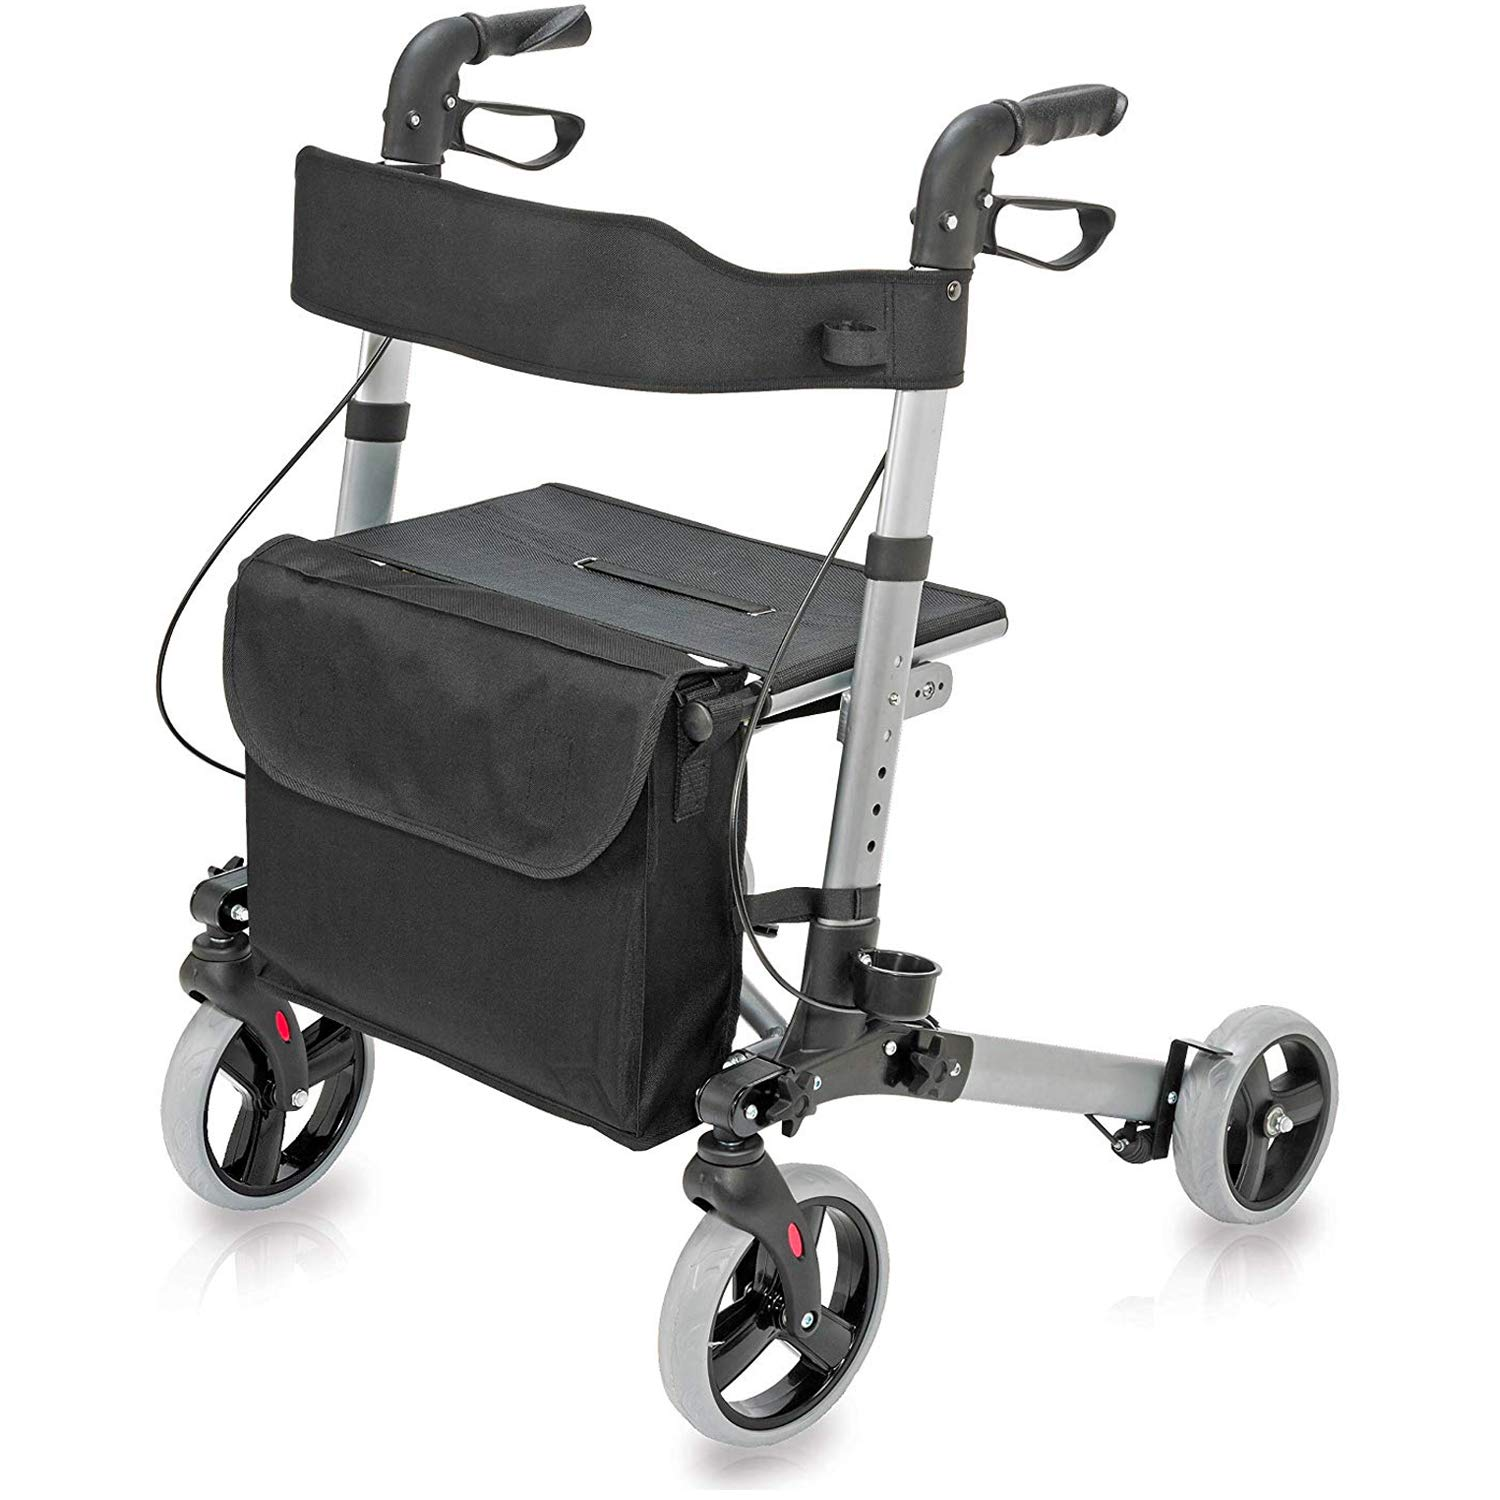 HealthSmart Rollator Walker with Seat and Backrest, Adjustable Handle Height, Removable Storage Bag and a Durable Lightweight Frame That Easily Folds While Supporting up to 300 pounds, Titanium by HealthSmart